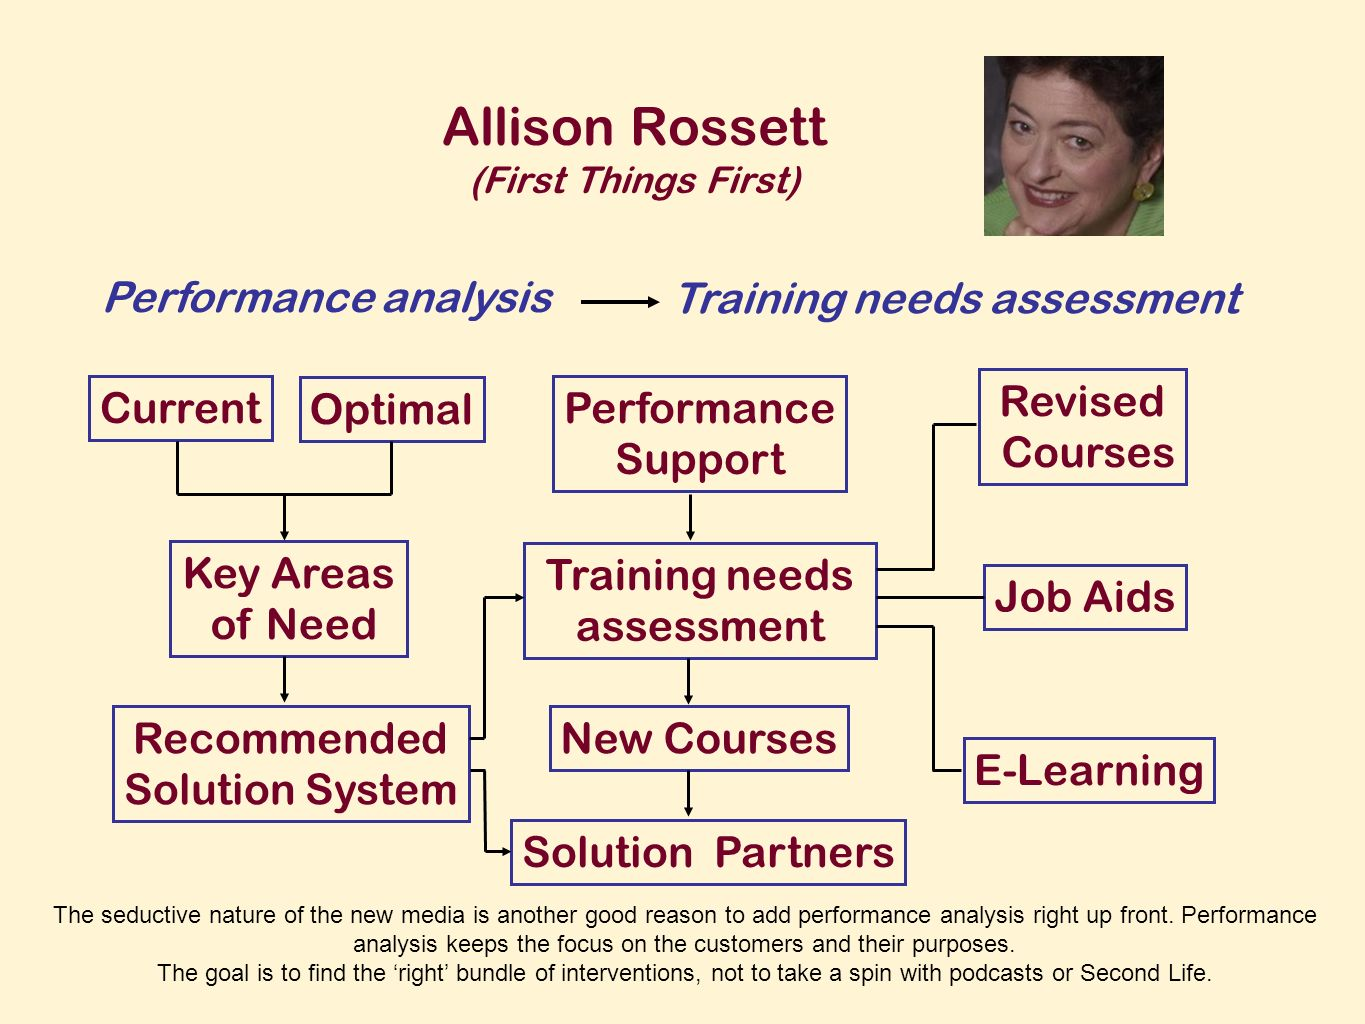 Allison Rossett (First Things First) Performance analysis Training needs assessment Current Optimal Key Areas of Need Recommended Solution System Performance Support The seductive nature of the new media is another good reason to add performance analysis right up front.